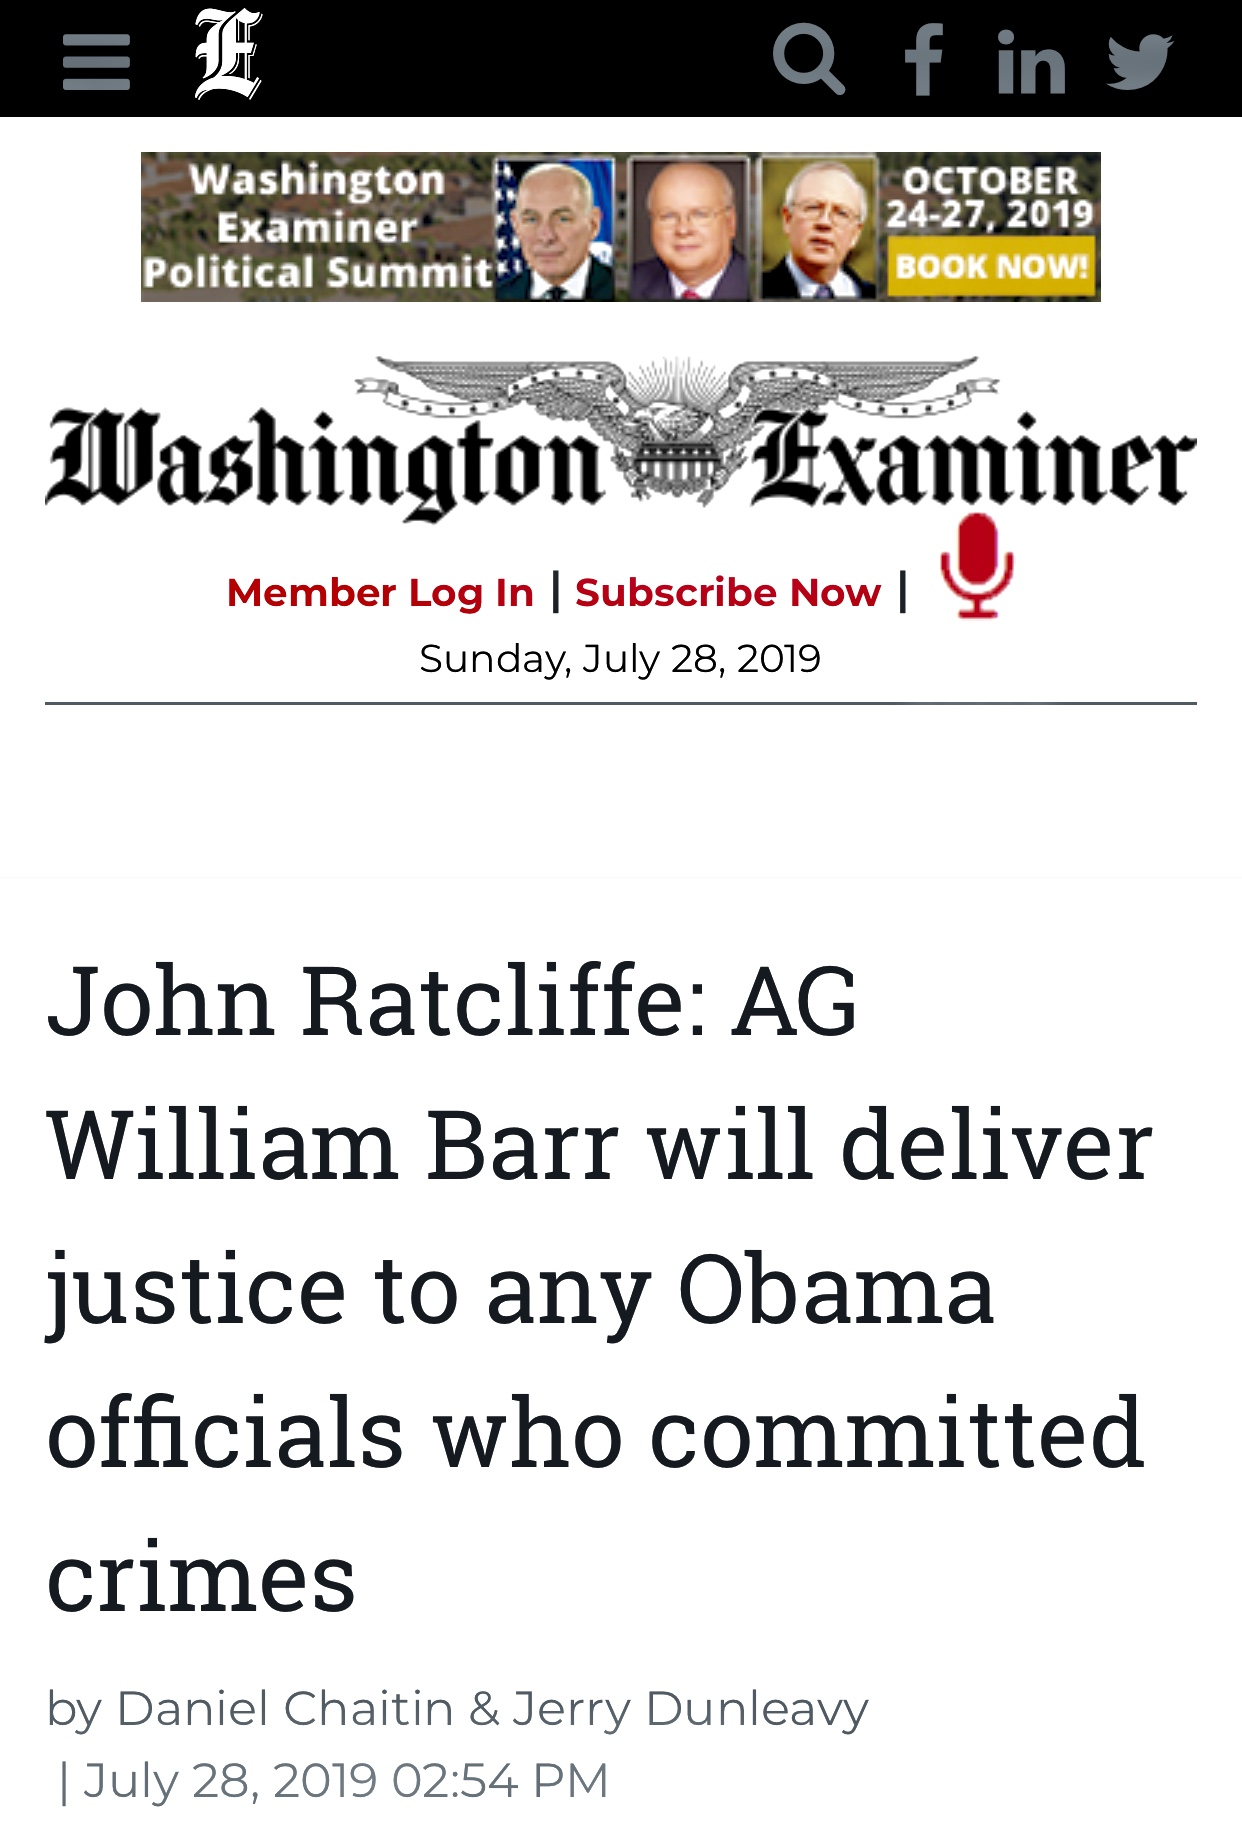 John Ratcliffe: AG William Barr will deliver justice to any Obama officials who committed crimes